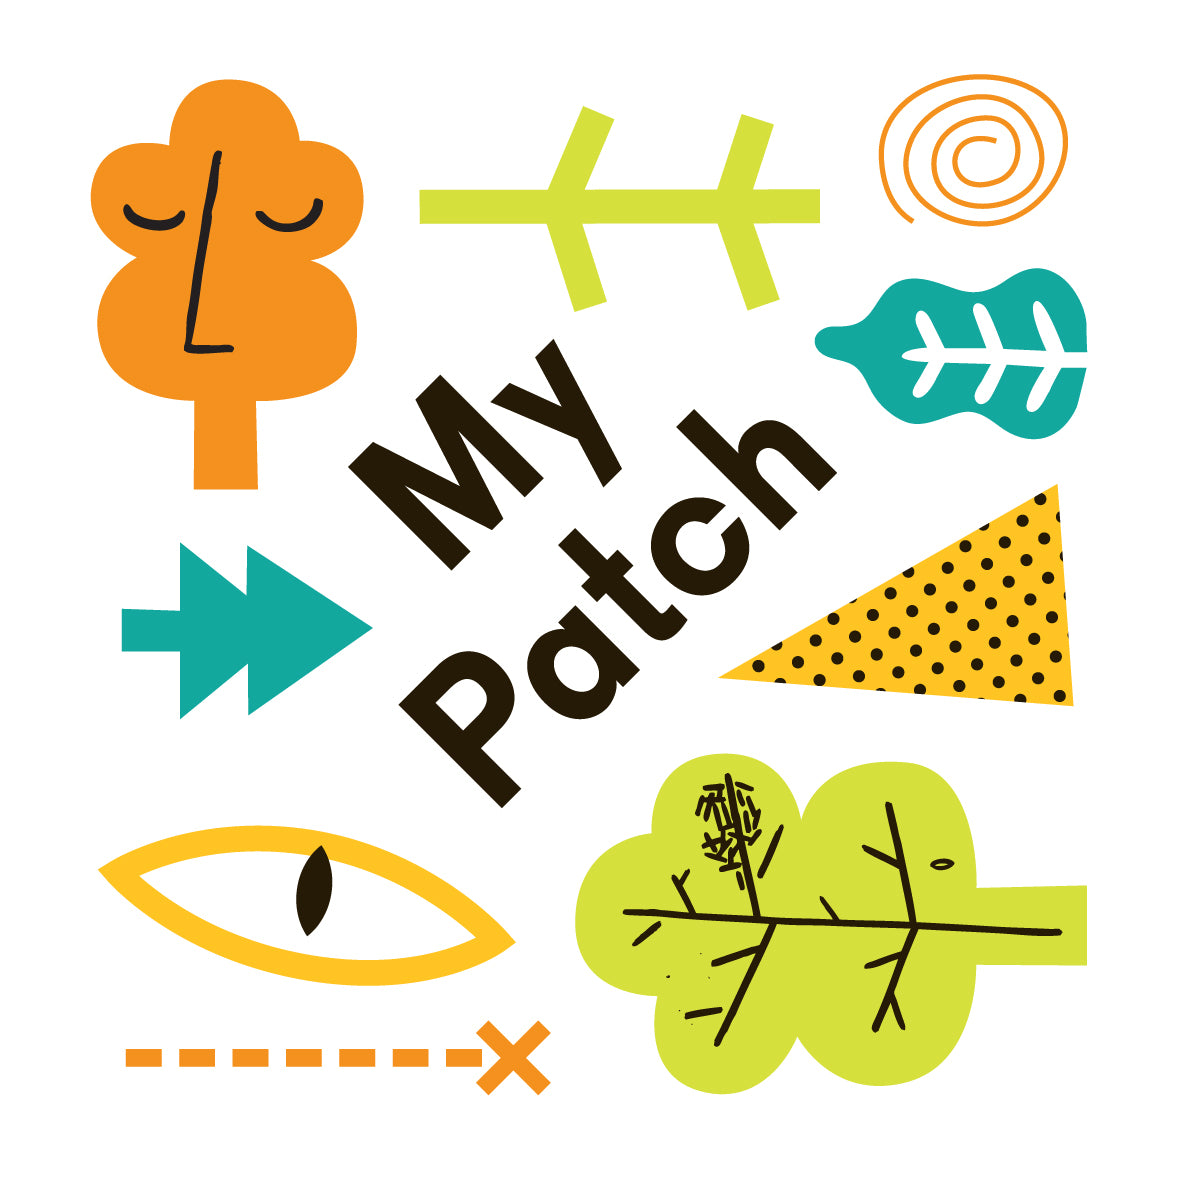 My Patch identity by Nick Deakin